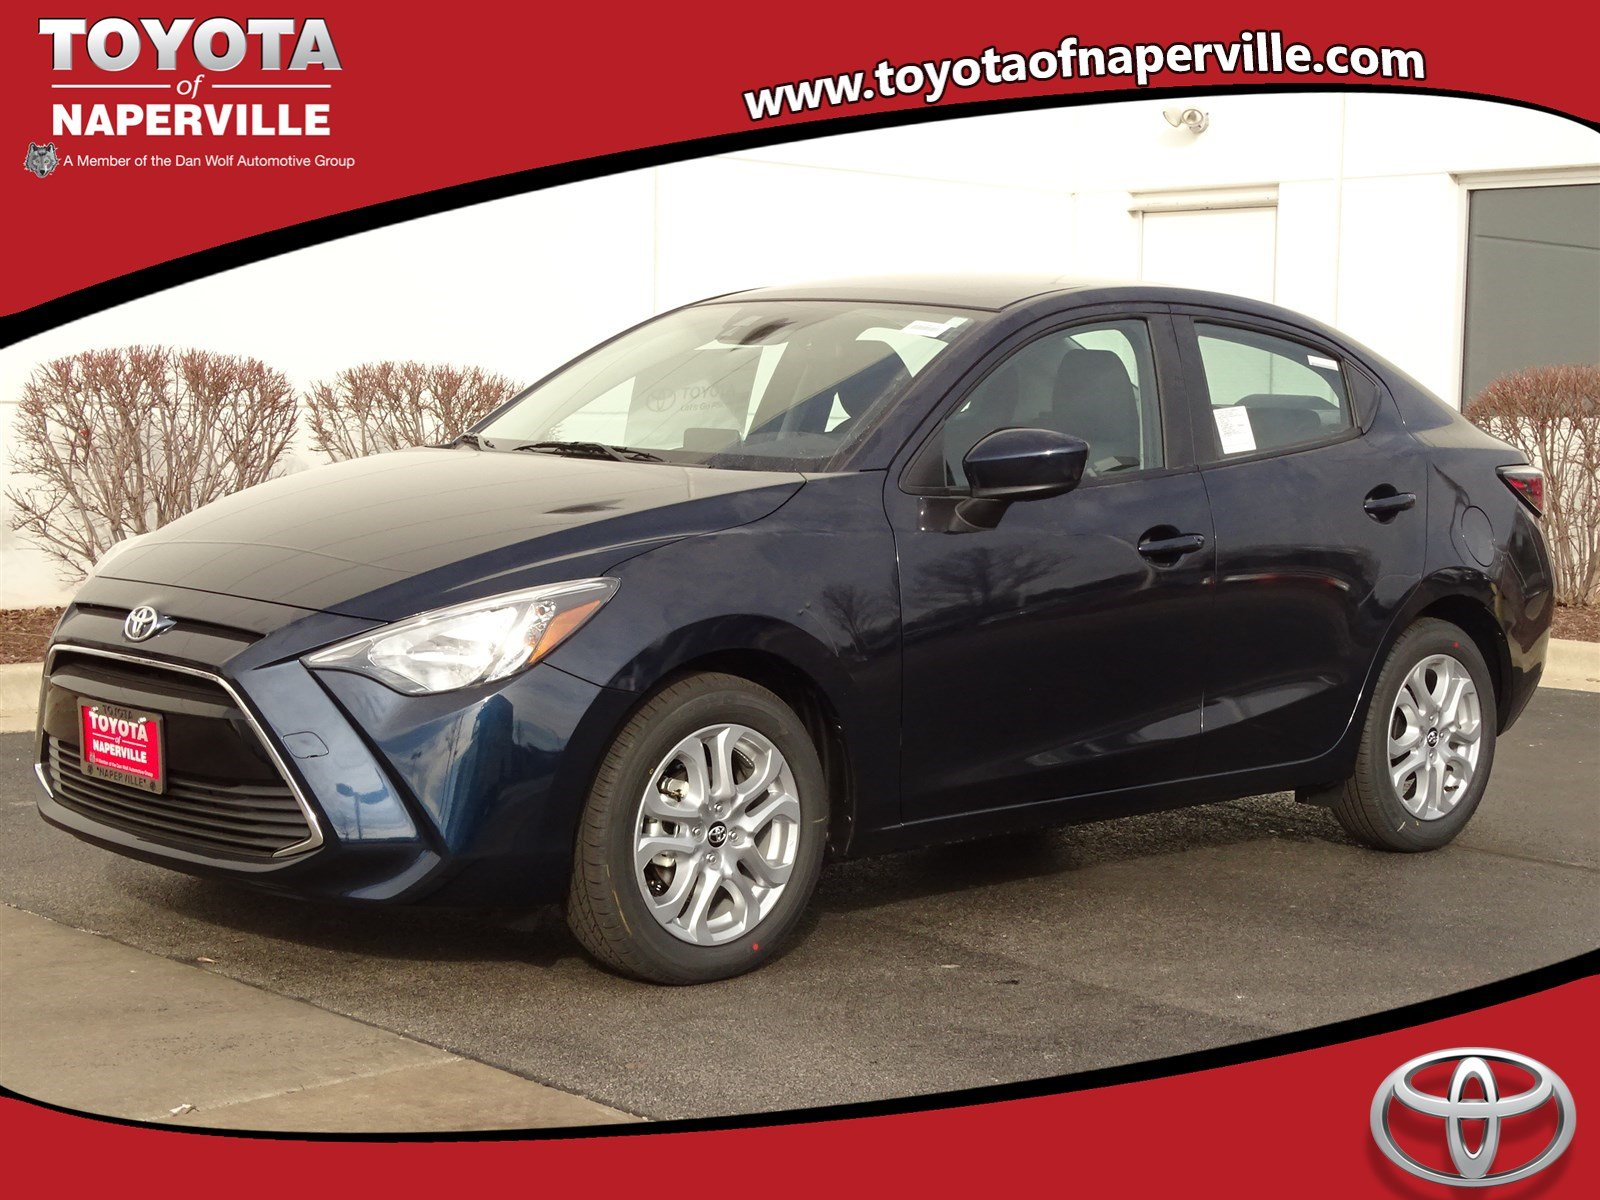 new 2017 toyota yaris ia 4d sedan in naperville c29916 toyota of naperville. Black Bedroom Furniture Sets. Home Design Ideas